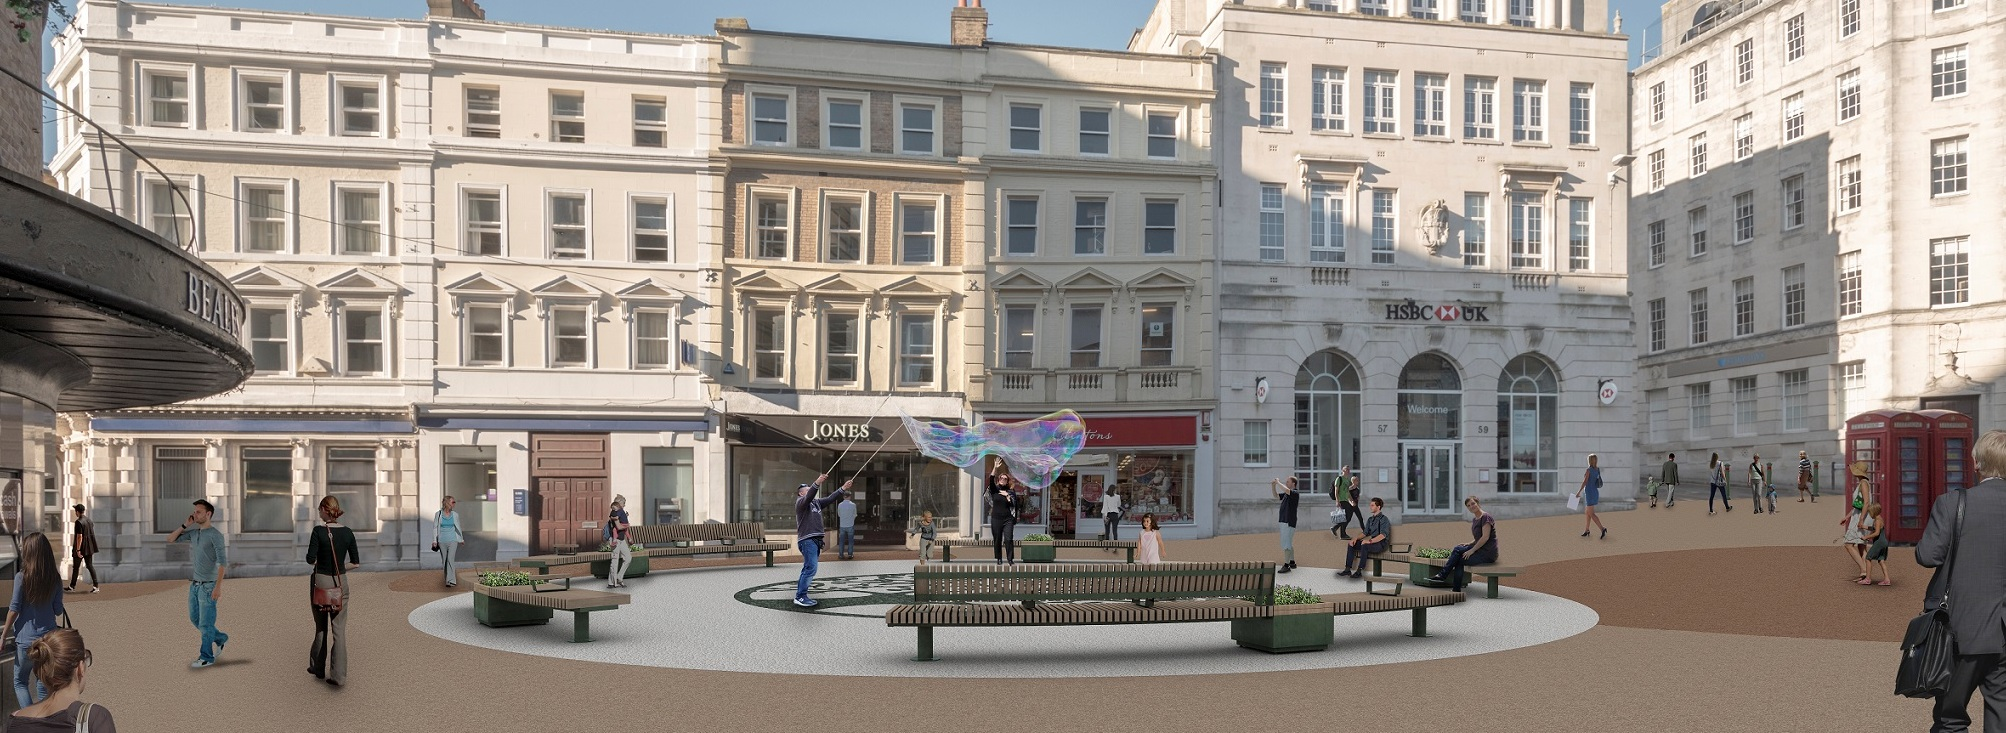 Makeover of Beale Place in Bournemouth is complete